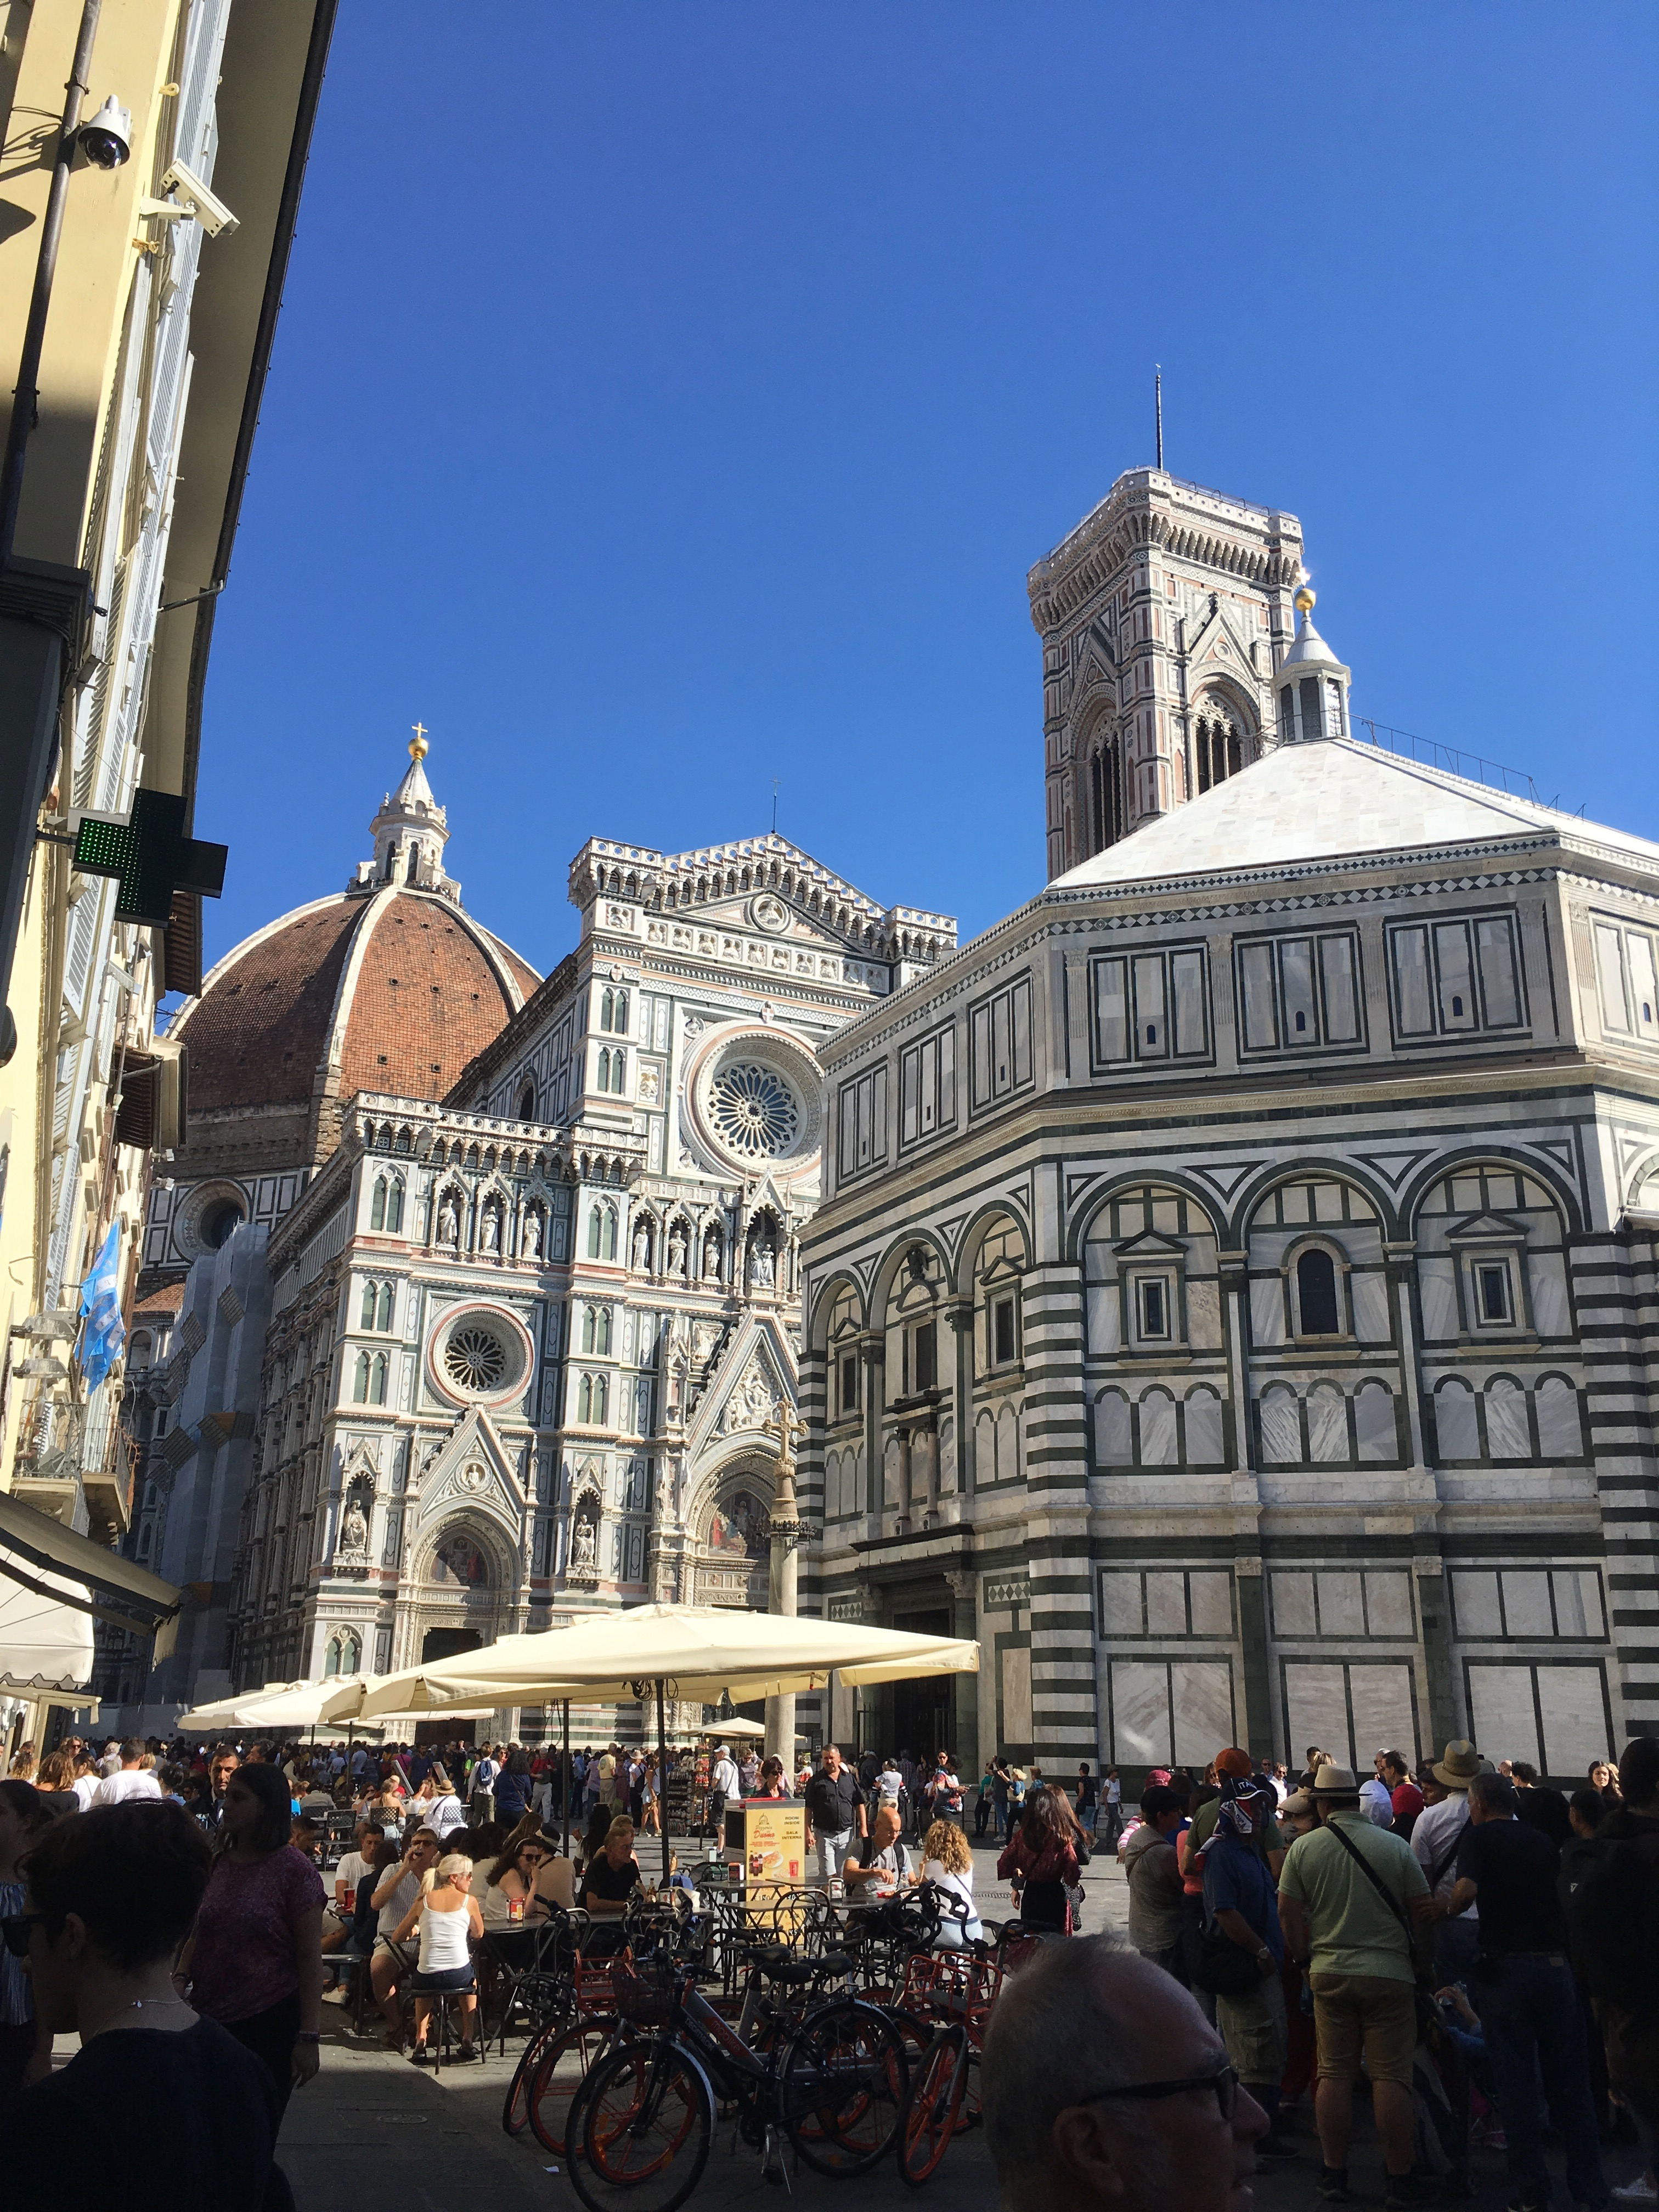 Many people are sitting, standing, and walking outside of the Piazza del Duomo.